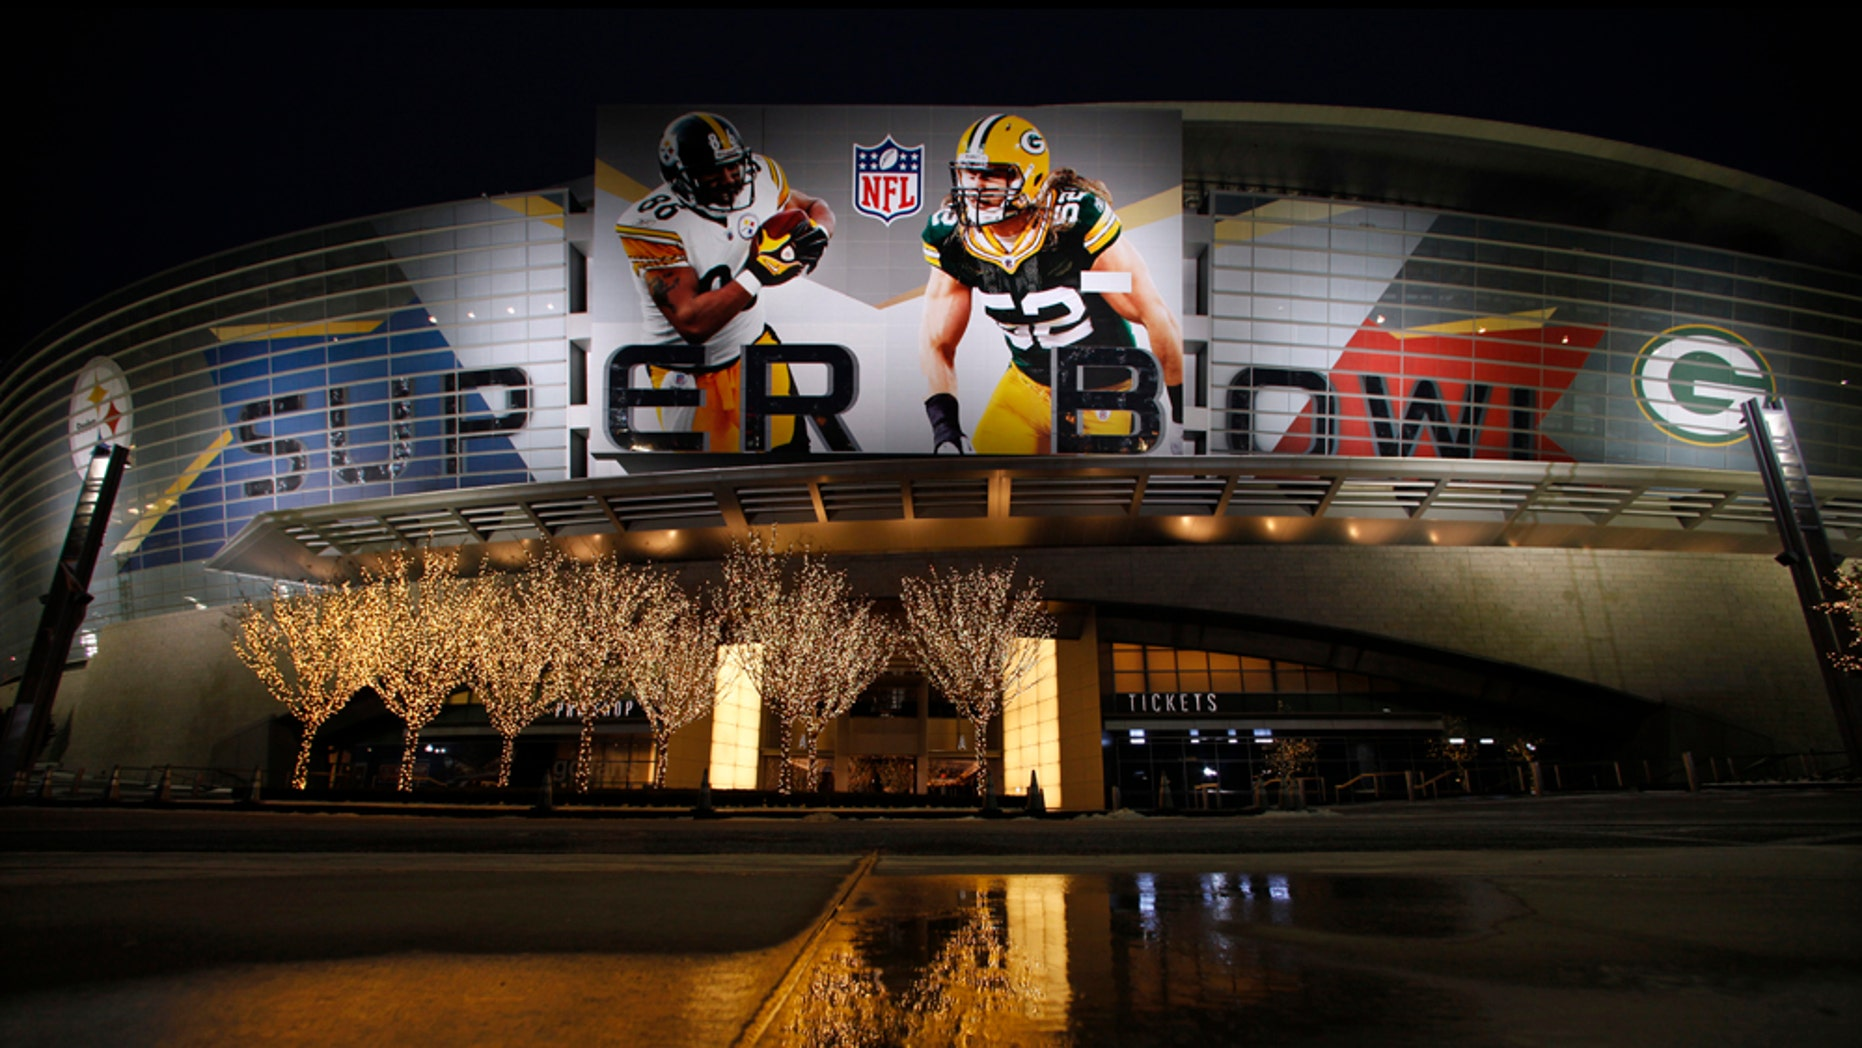 Lights are reflected on an icy pavement outside of Cowboys Stadium where the NFL football Super Bowl XLV will be played between the Green Bay Packers and the Pittsburgh Steelers Thursday, Feb. 3, 2011, in Arlington, Texas. (AP Photo/Charlie Riedel)